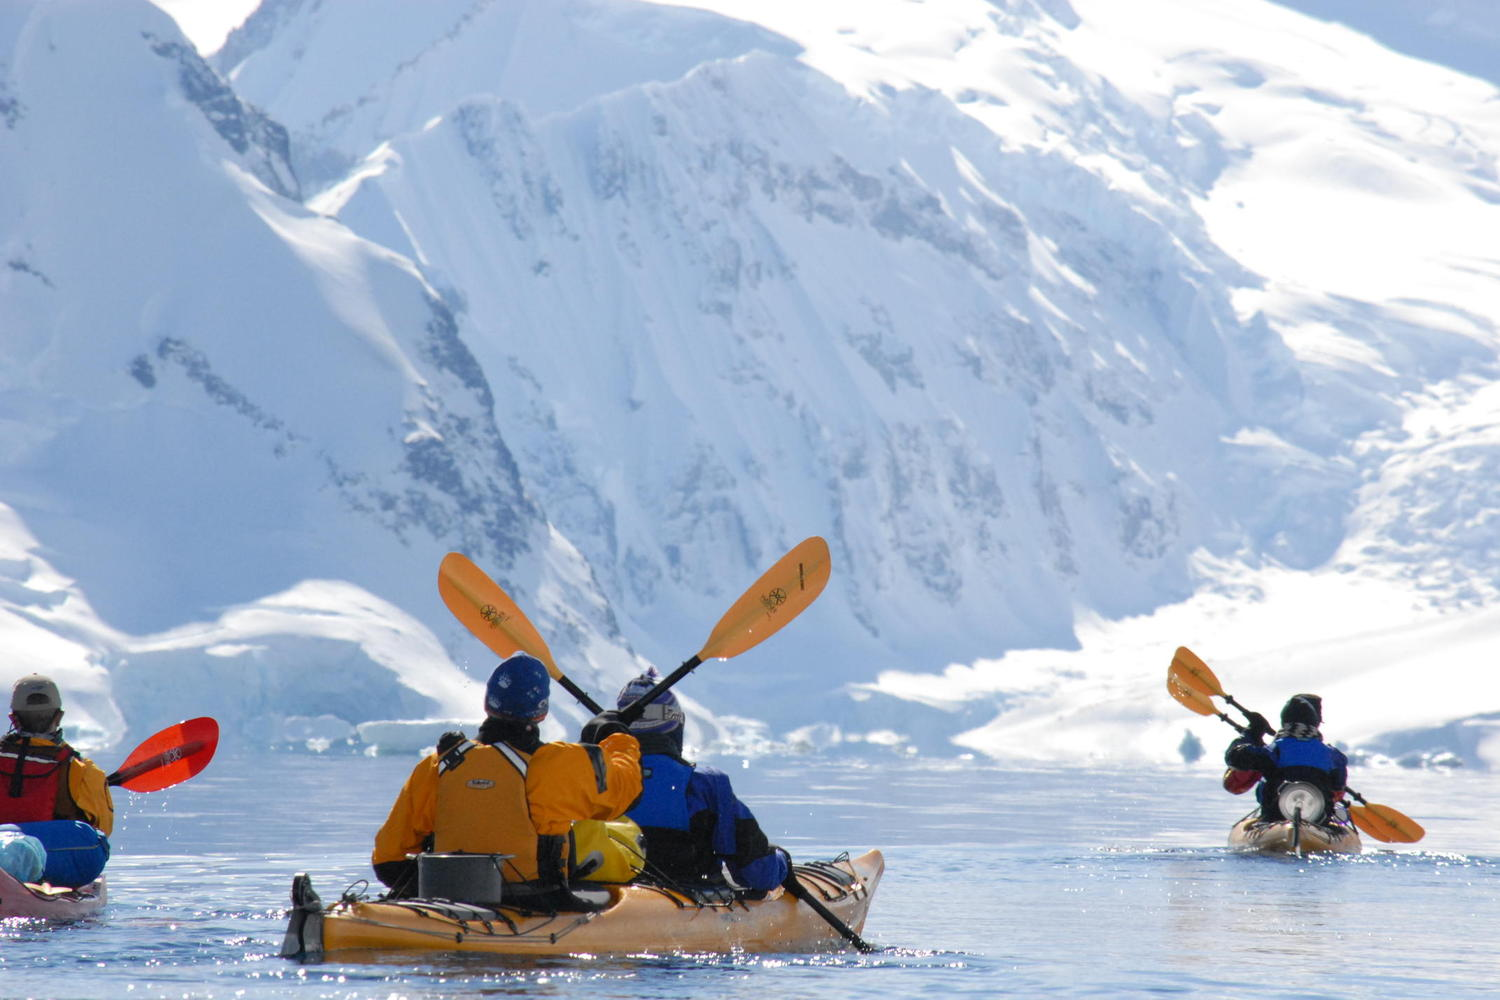 Kayaking on a beautiful day in Antarctica